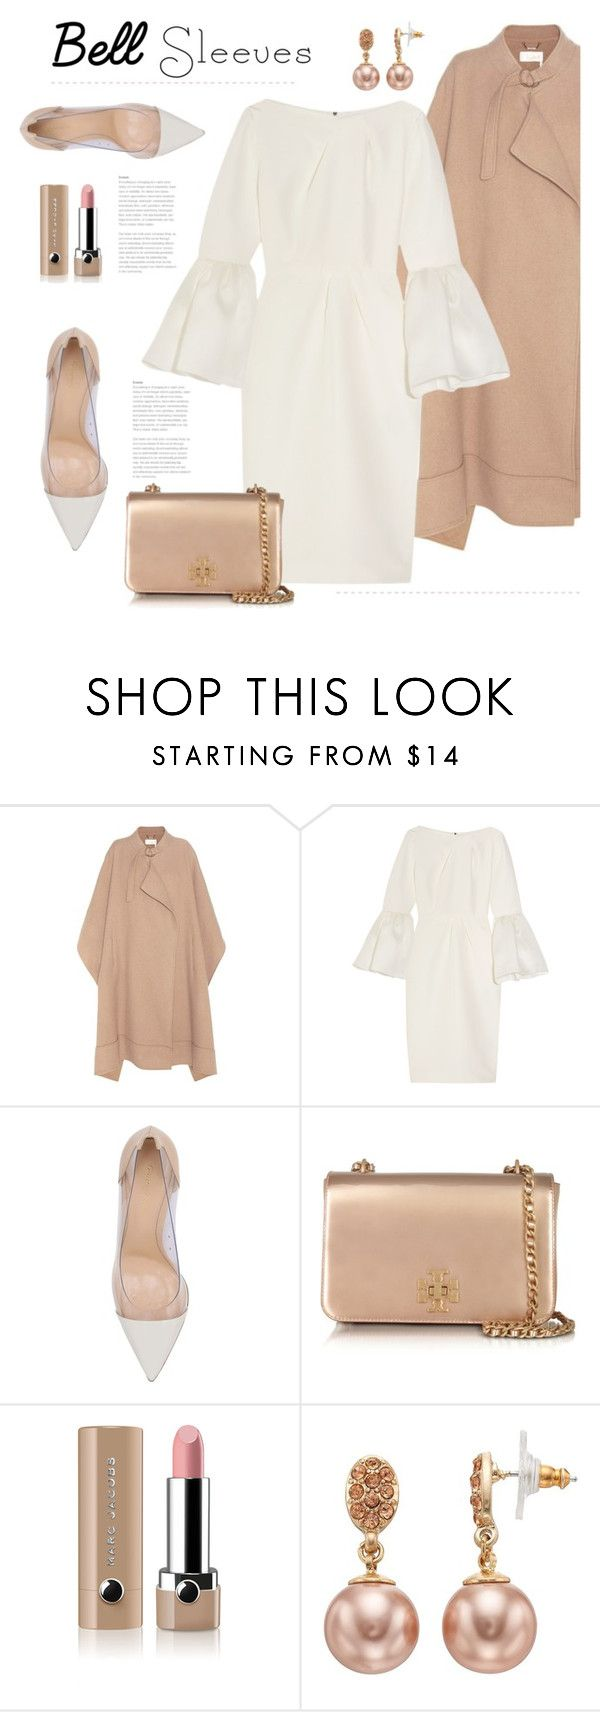 """Street Style Trend: Bell Sleeves"" by bliznec ❤ liked on Polyvore featuring Chloé, Roksanda, Gianvito Rossi, Tory Burch, Marc Jacobs, Simply Vera, polyvoreeditorial, polyvorecontest, bellsleeves and rolandmoured"